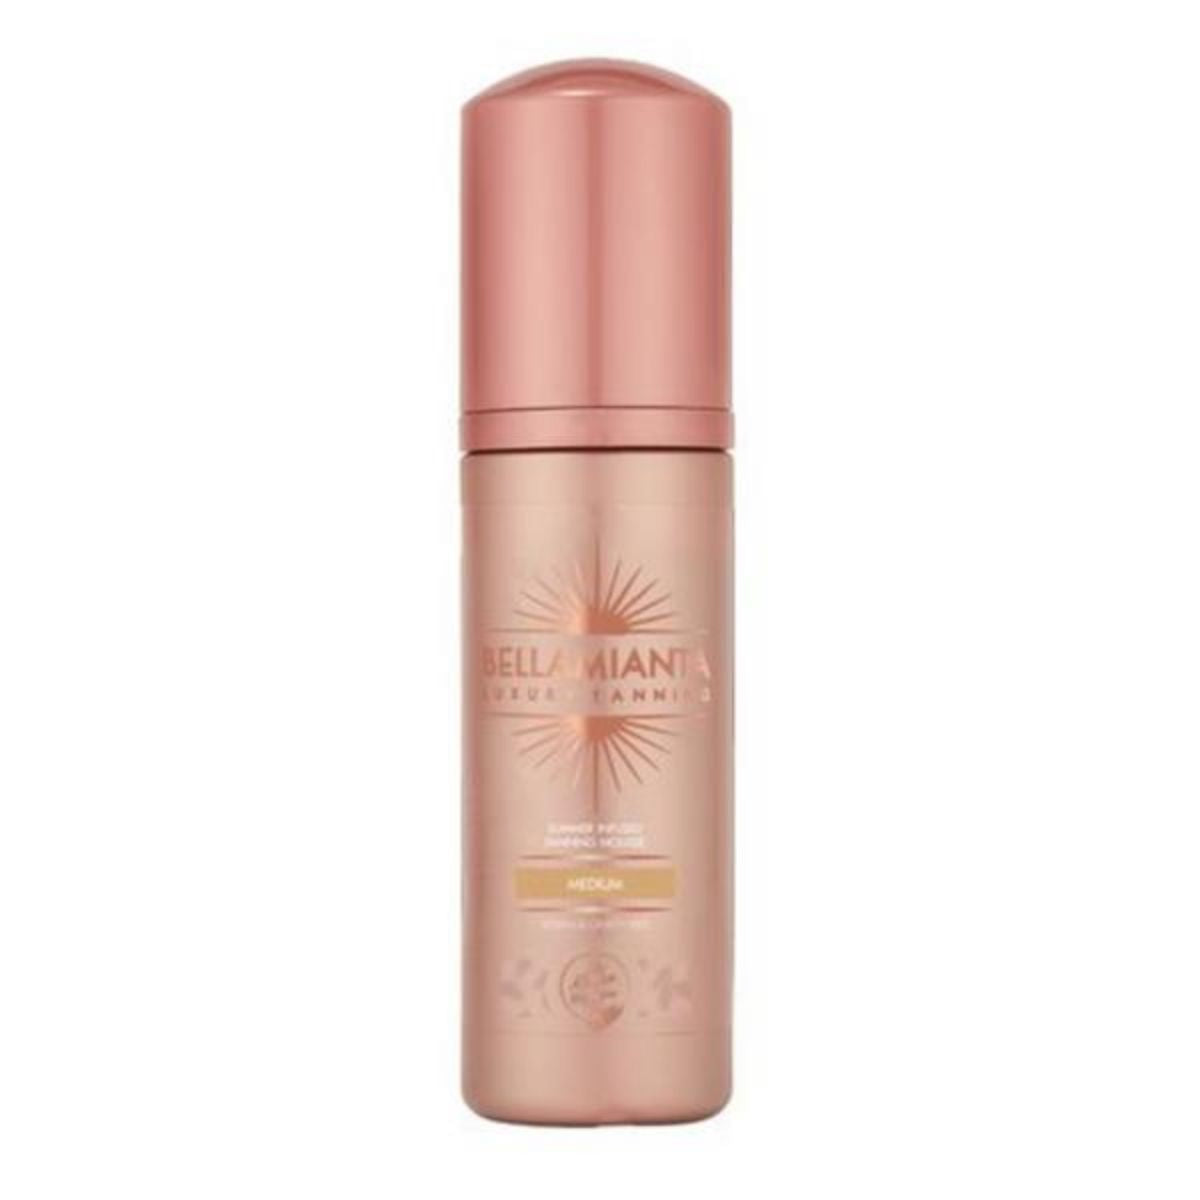 Bellamianta X Maura Higgins Tanning Mousse Medium